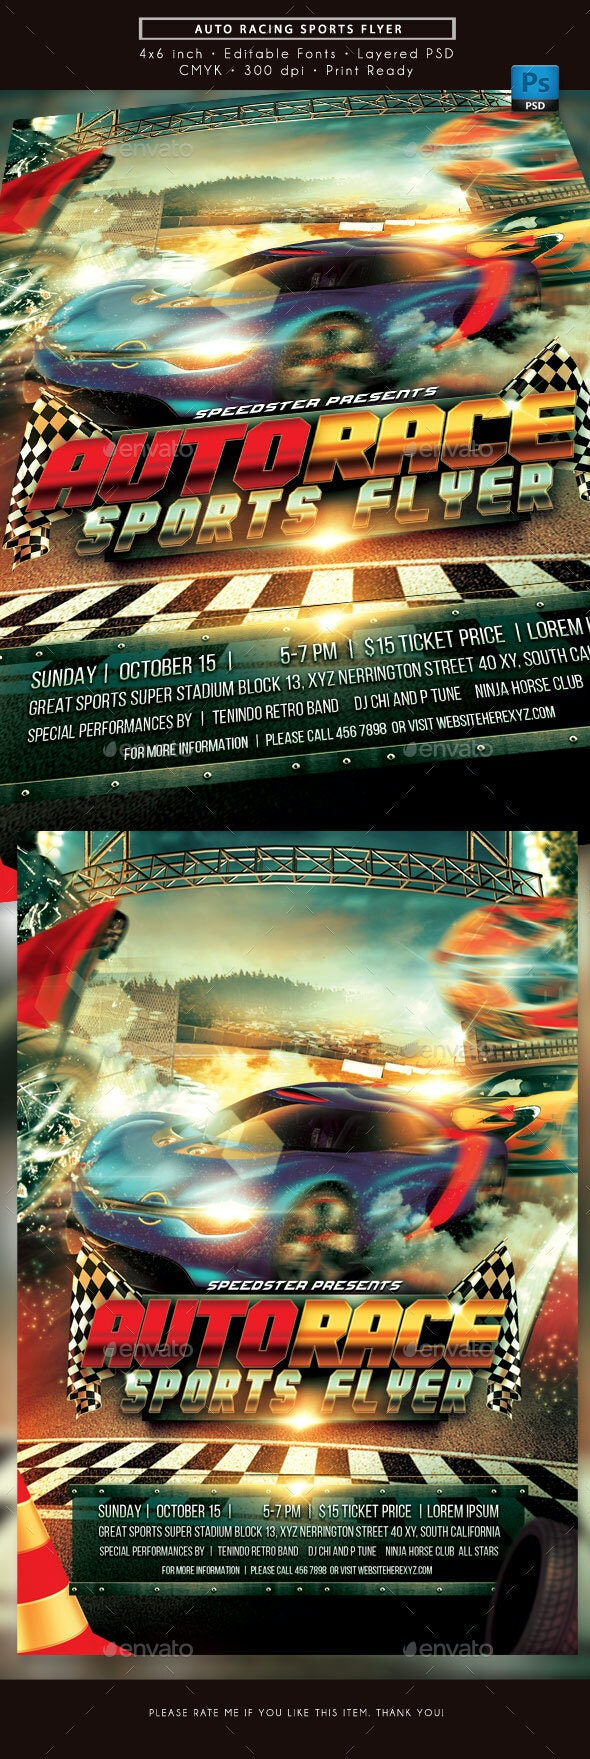 Auto Racing Sports Flyer - Sports Events